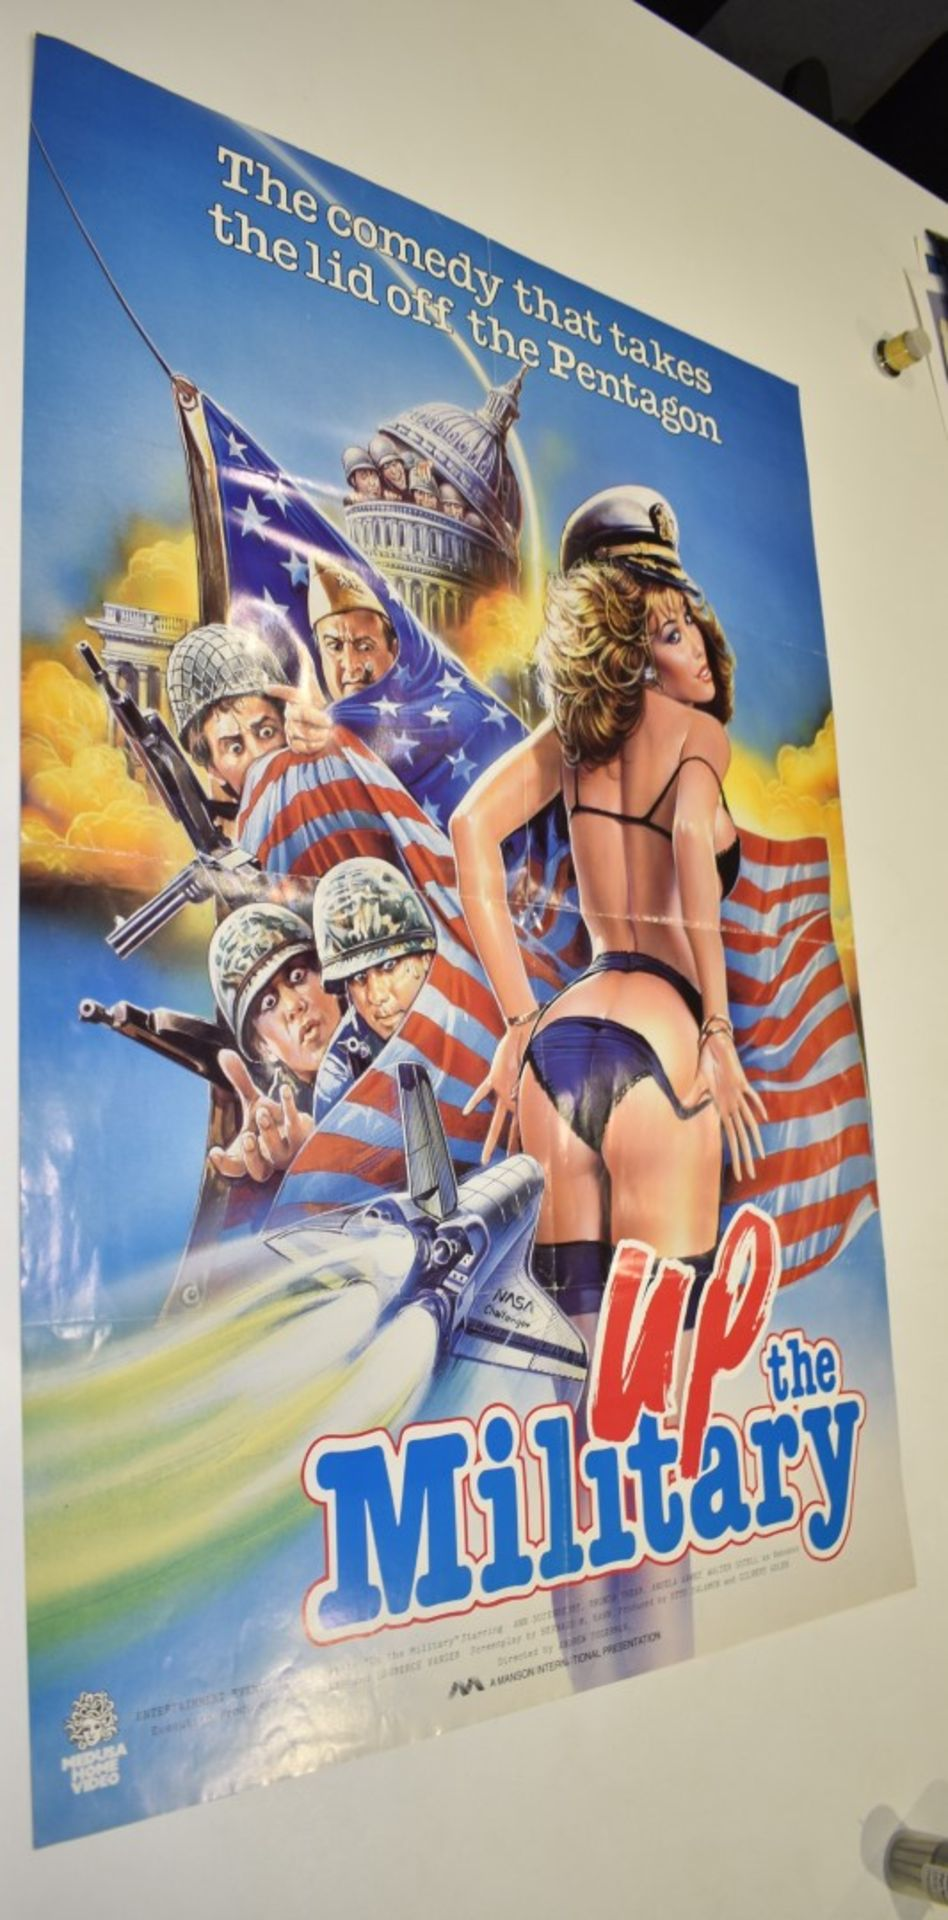 Lot 4082 - 1 x Movie Poster - UP THE MILITARY - The Comedy That Takes The Lid off The Pentagon - Starring